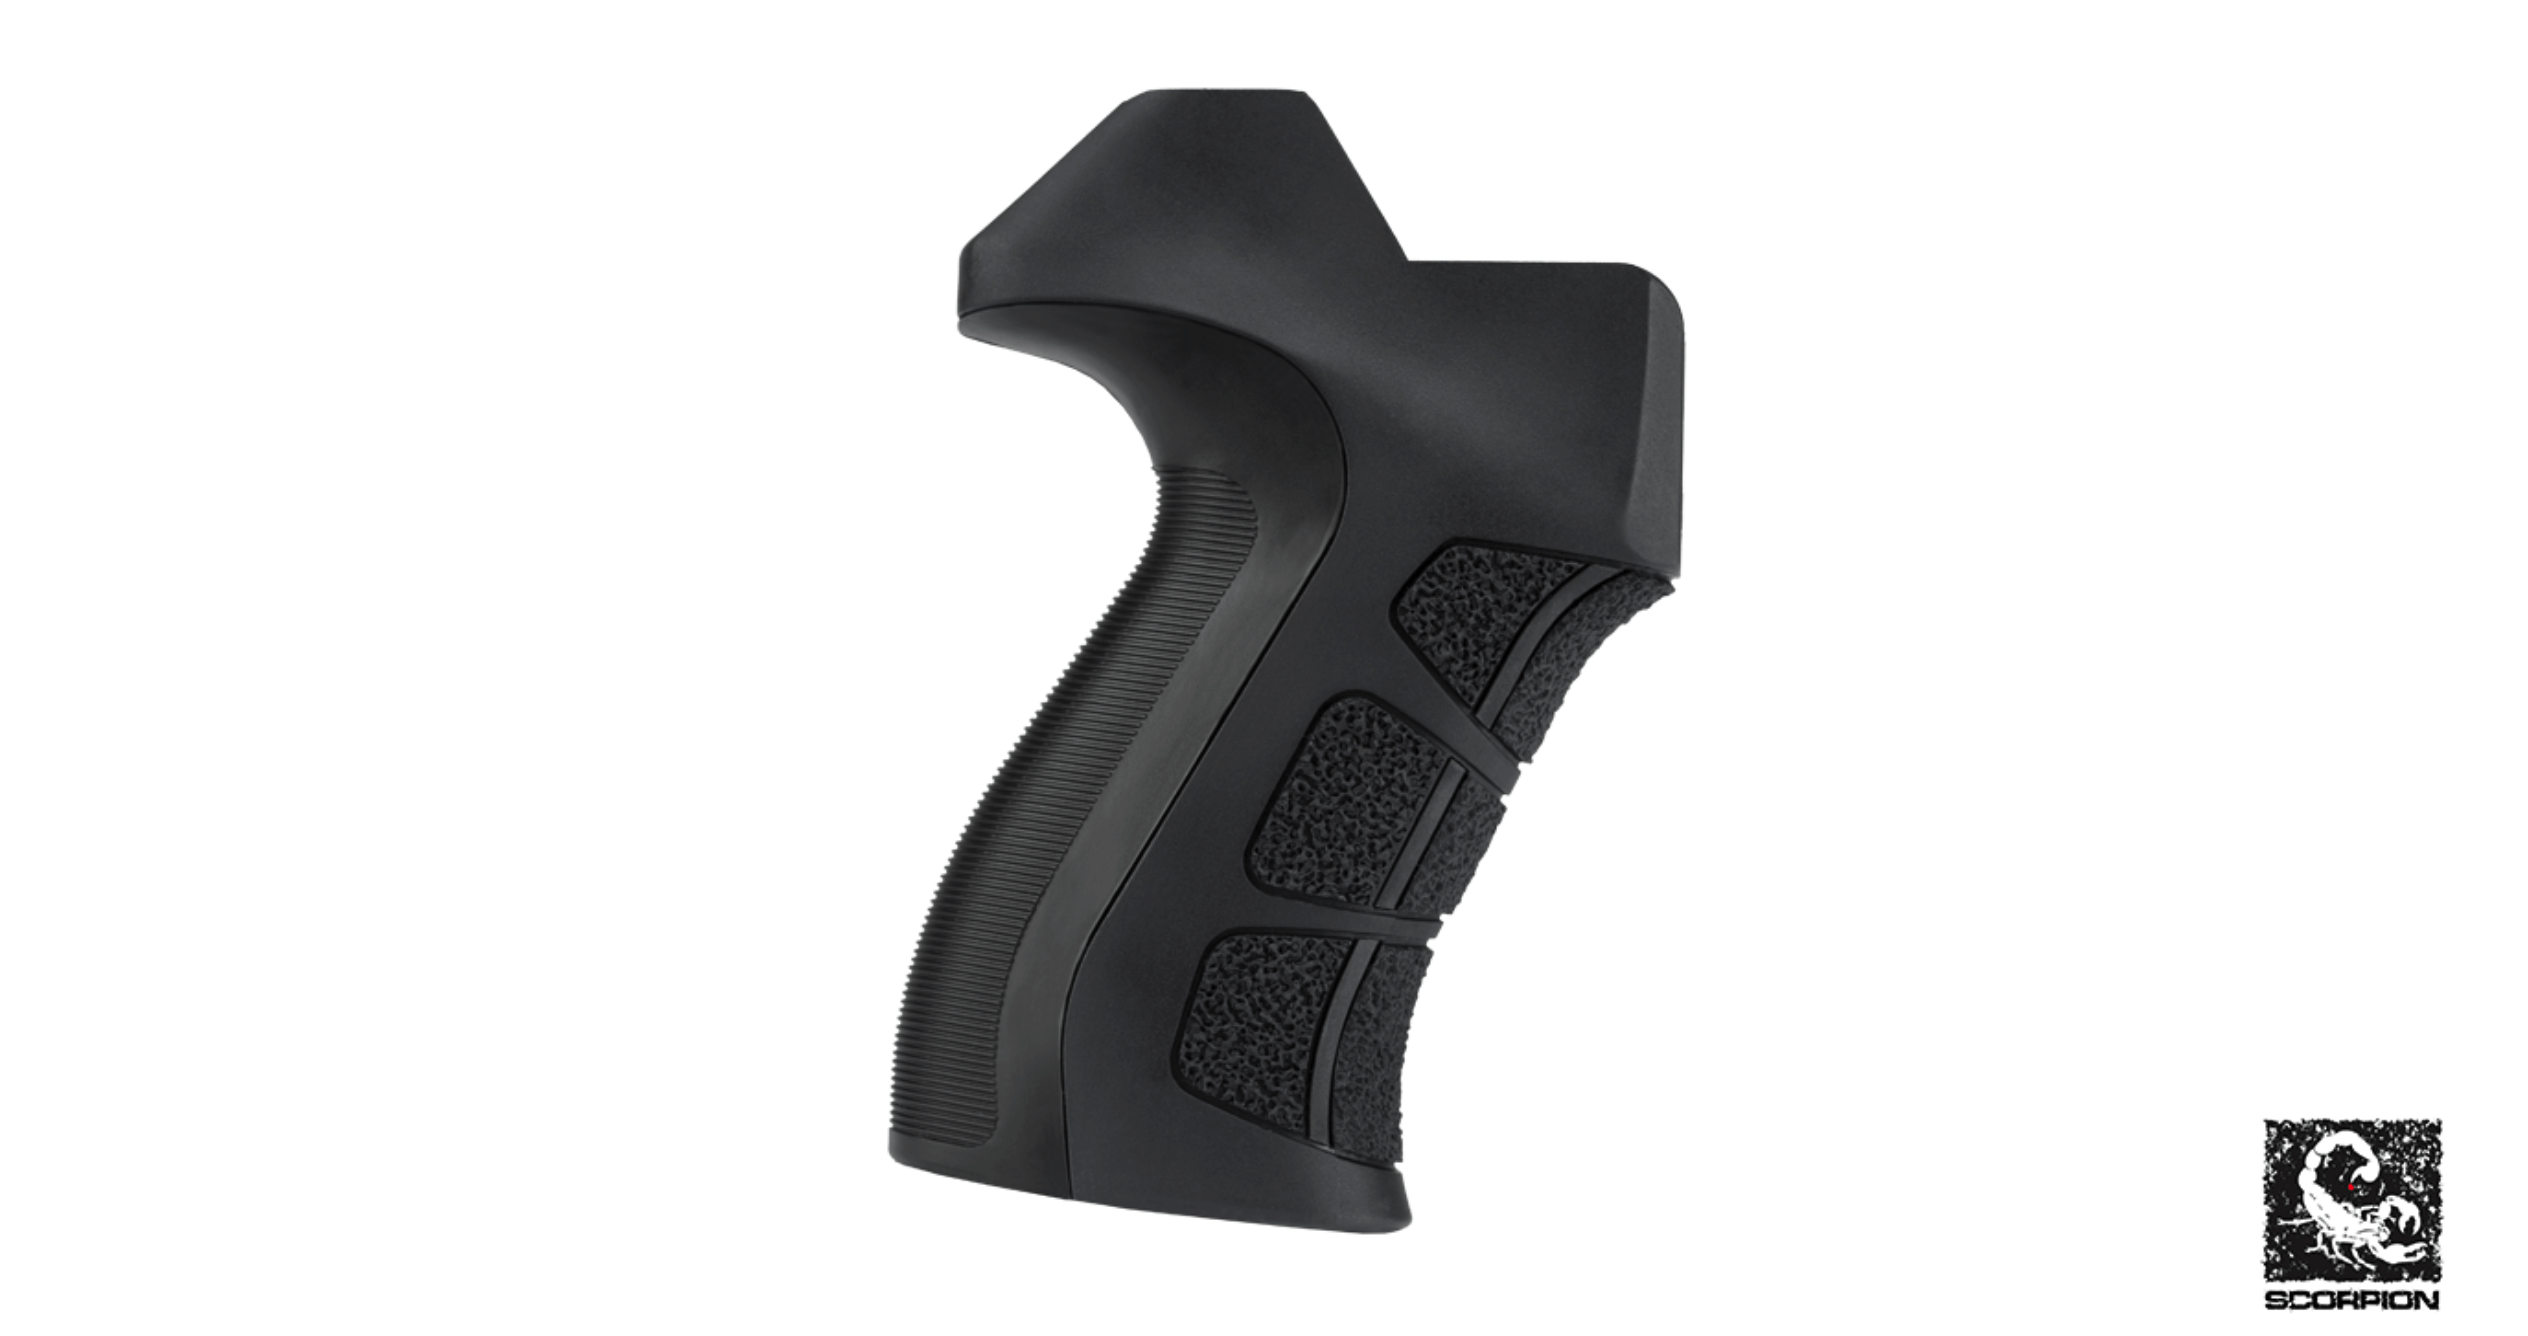 AR-15 SCORPION RECOIL PISTOL GRIP (X2) - BY ATI